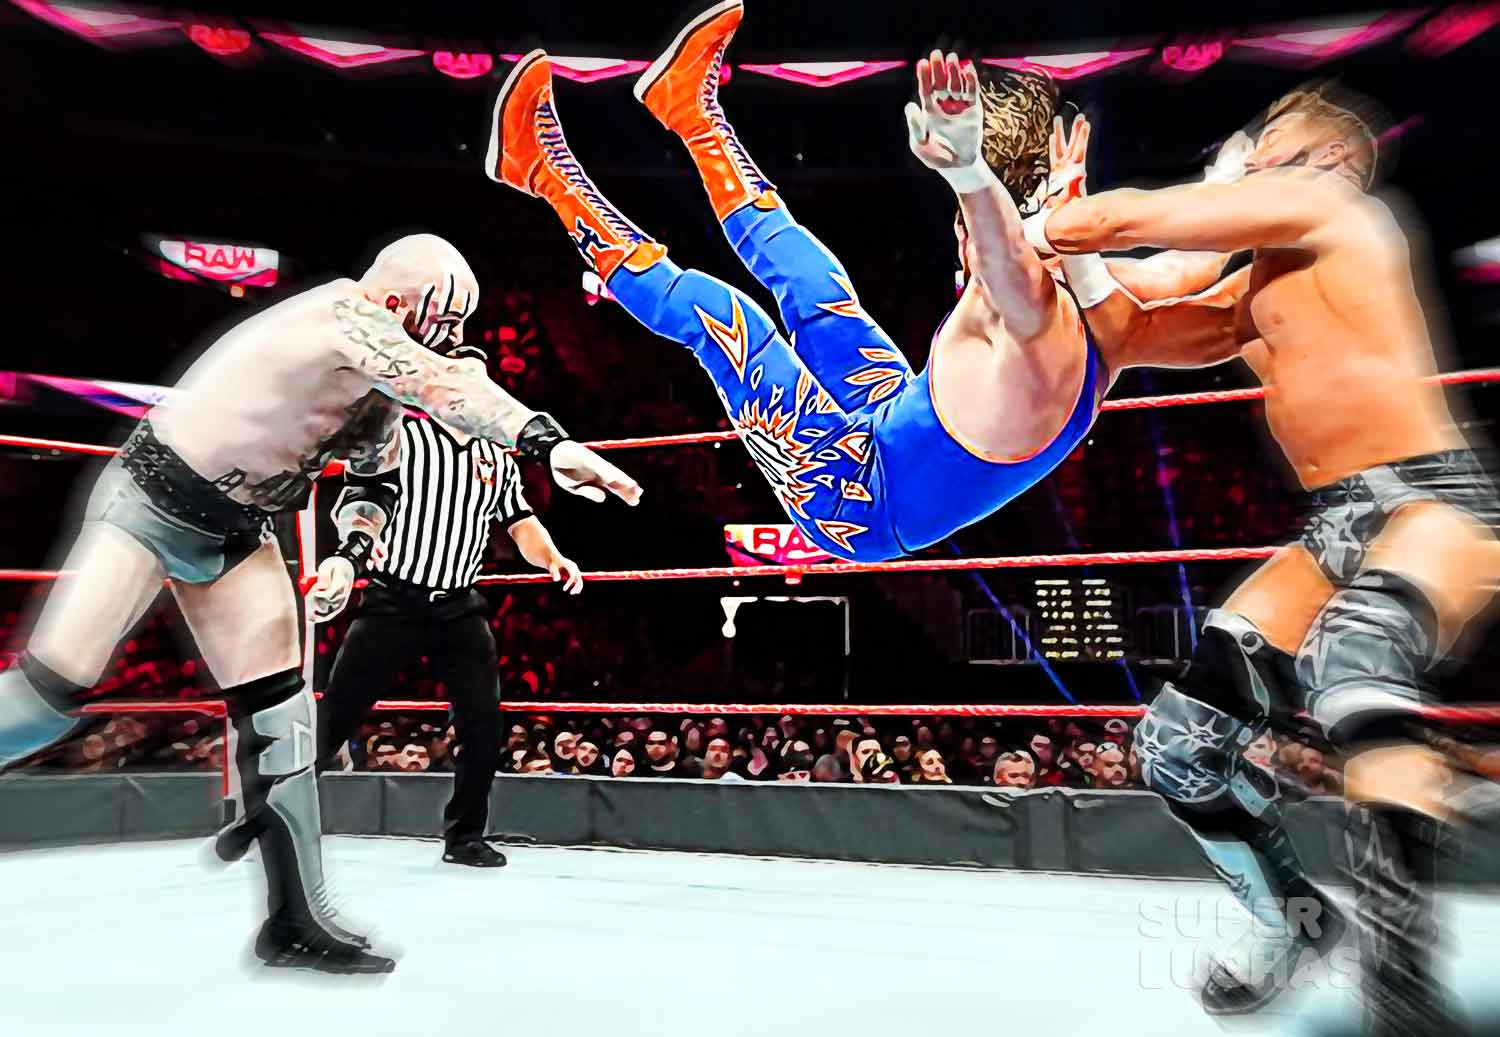 Viking Raiders vs Curt Hawkins y Zack Ryder